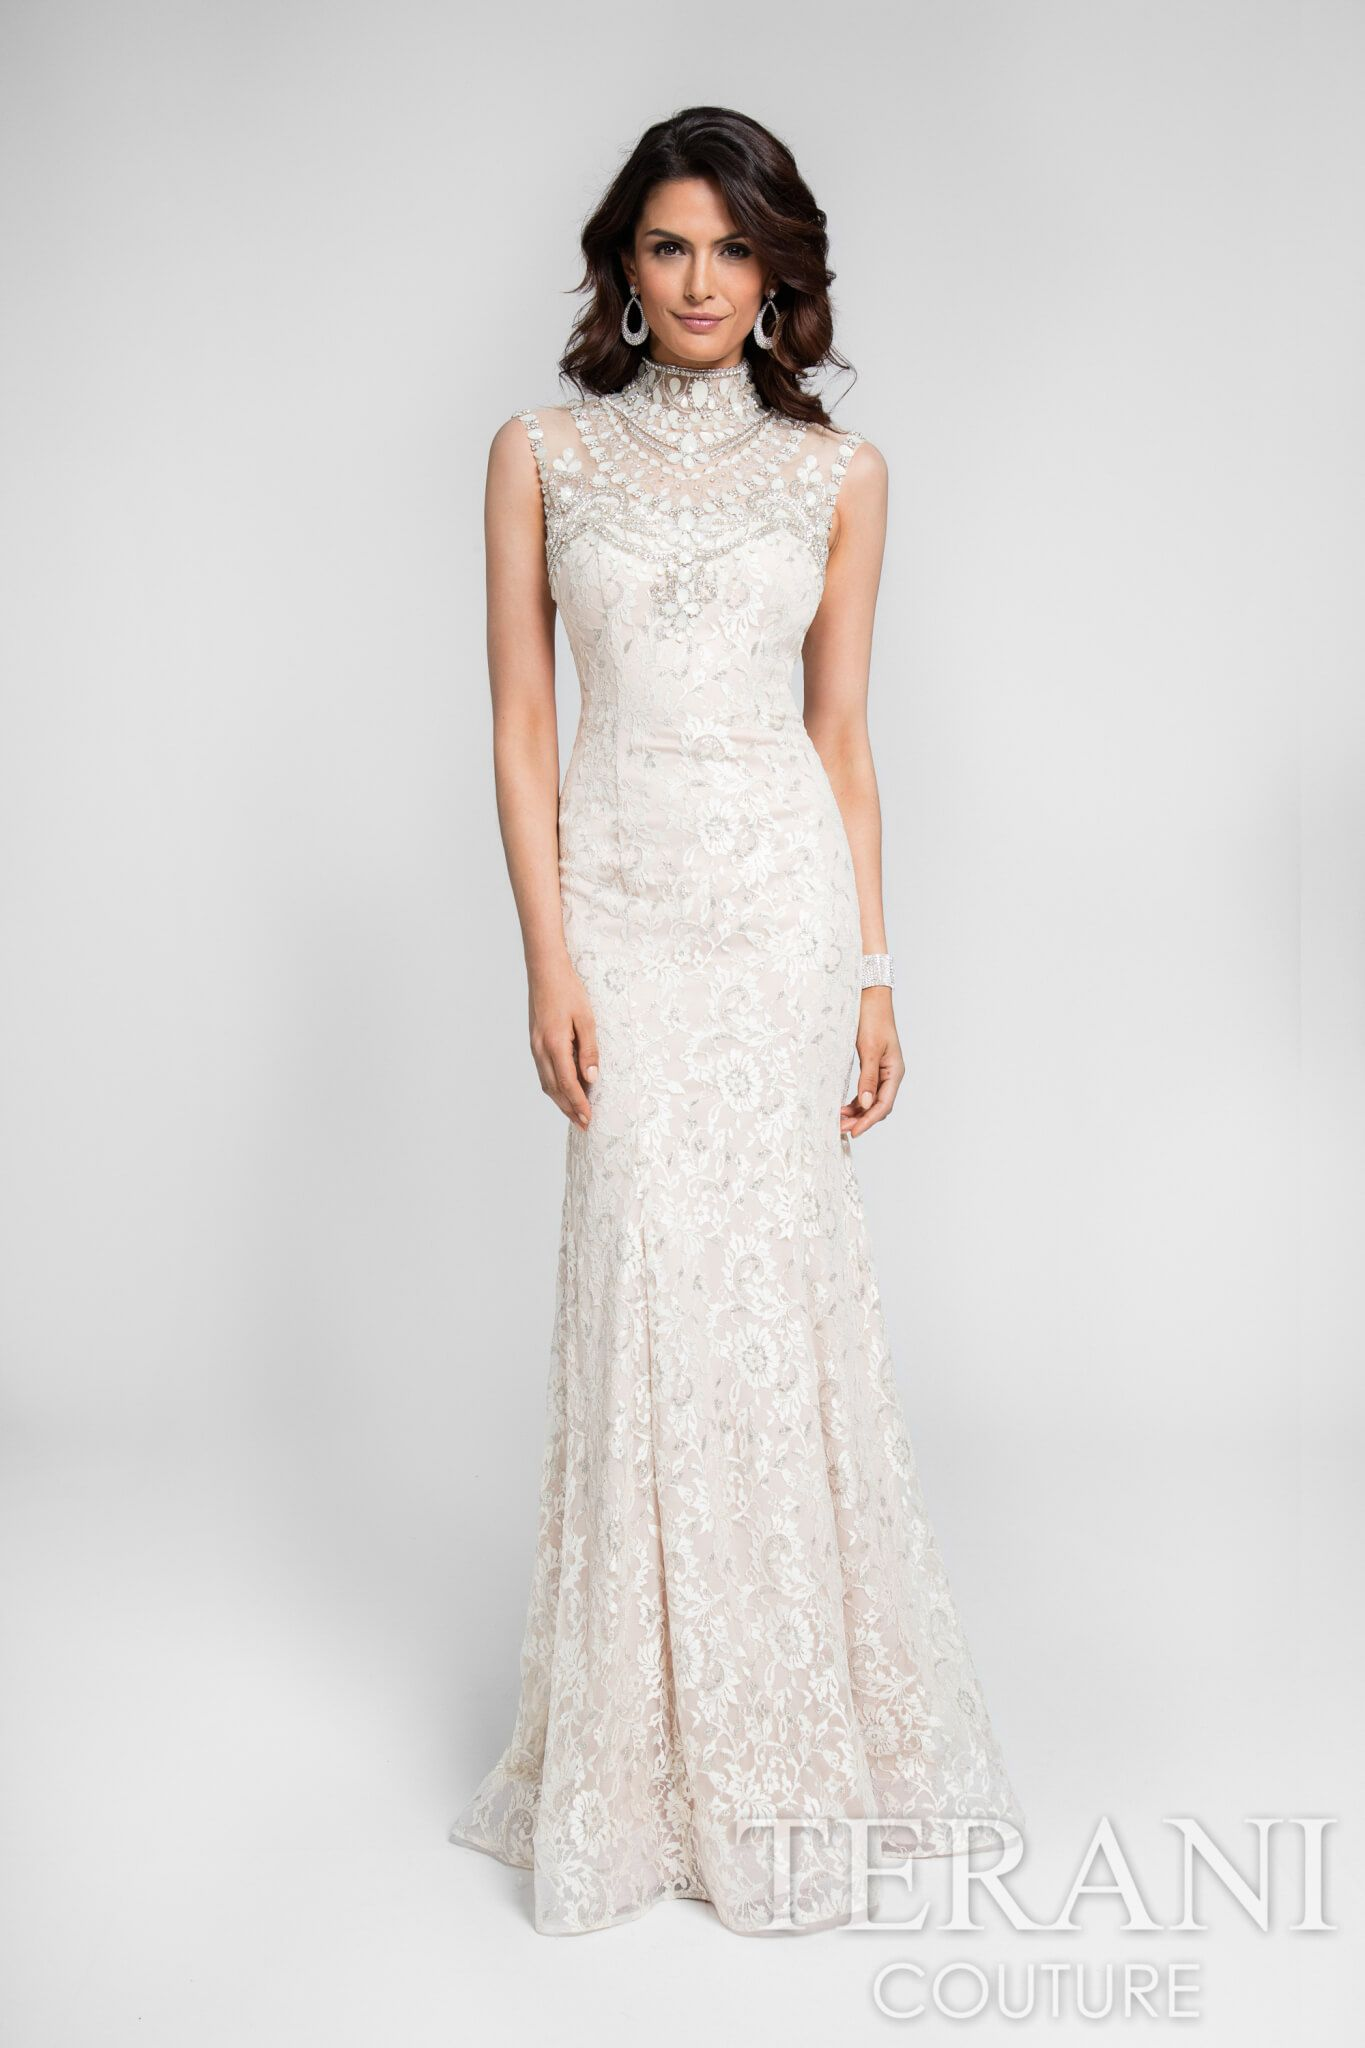 Champagne colored sleeveless metallic lace evening wear dress this